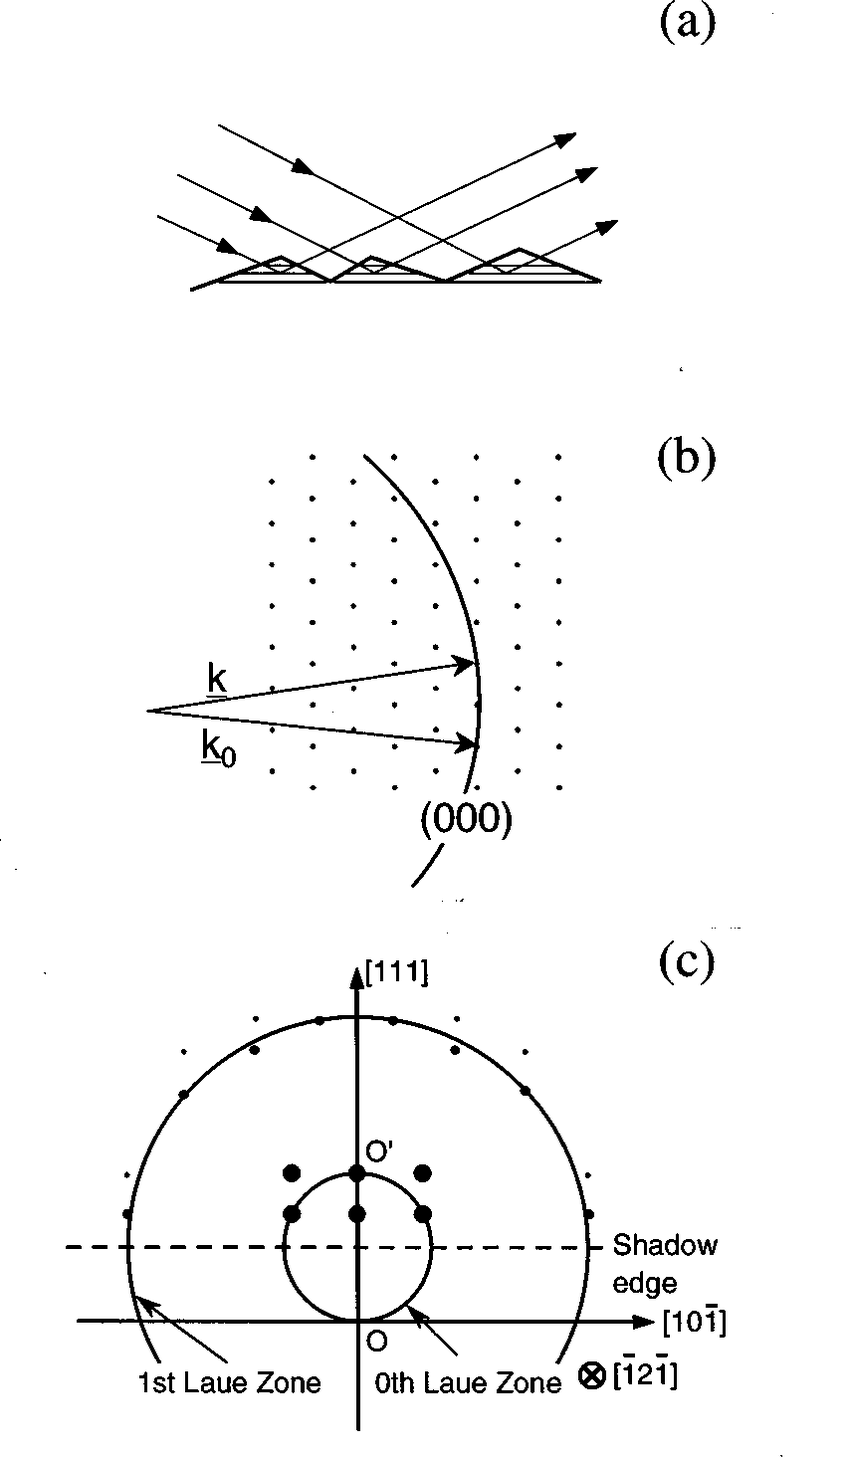 medium resolution of a schematic drawing of a rough surface model of a diamond 111 b ewald